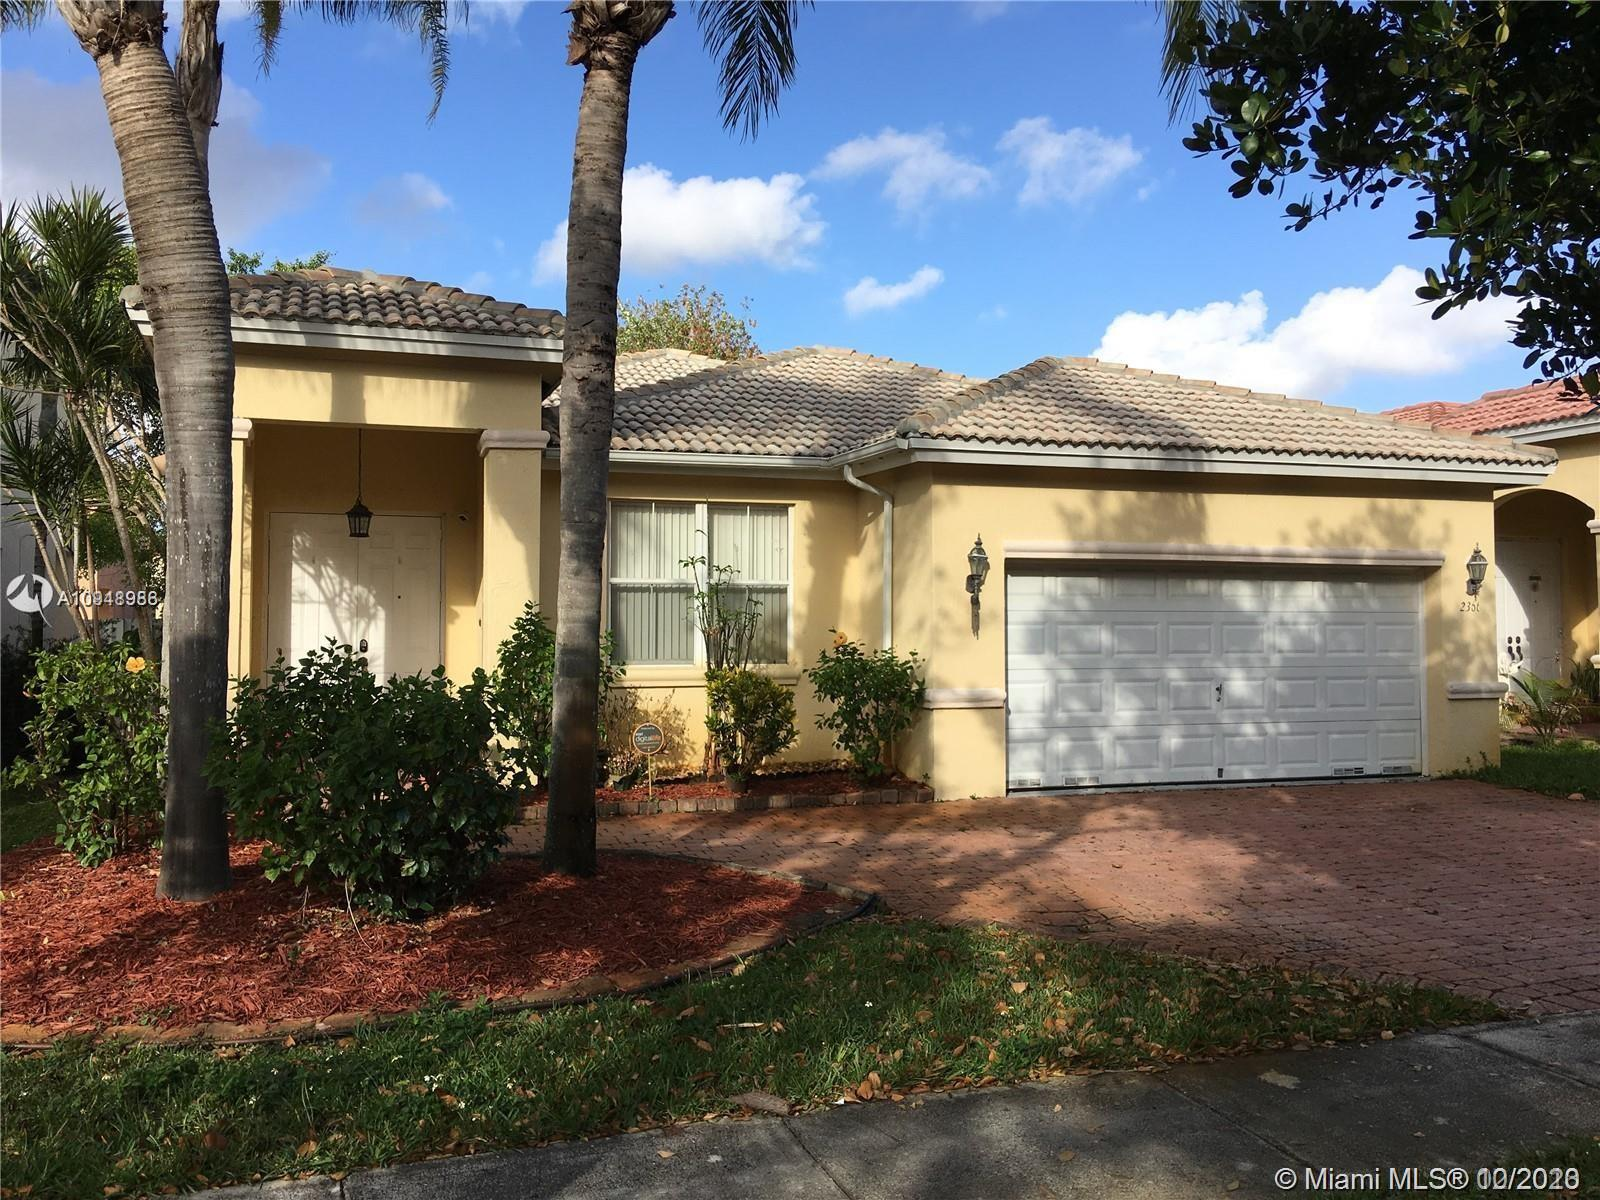 Details for 2366 125th Ave, Miramar, FL 33027